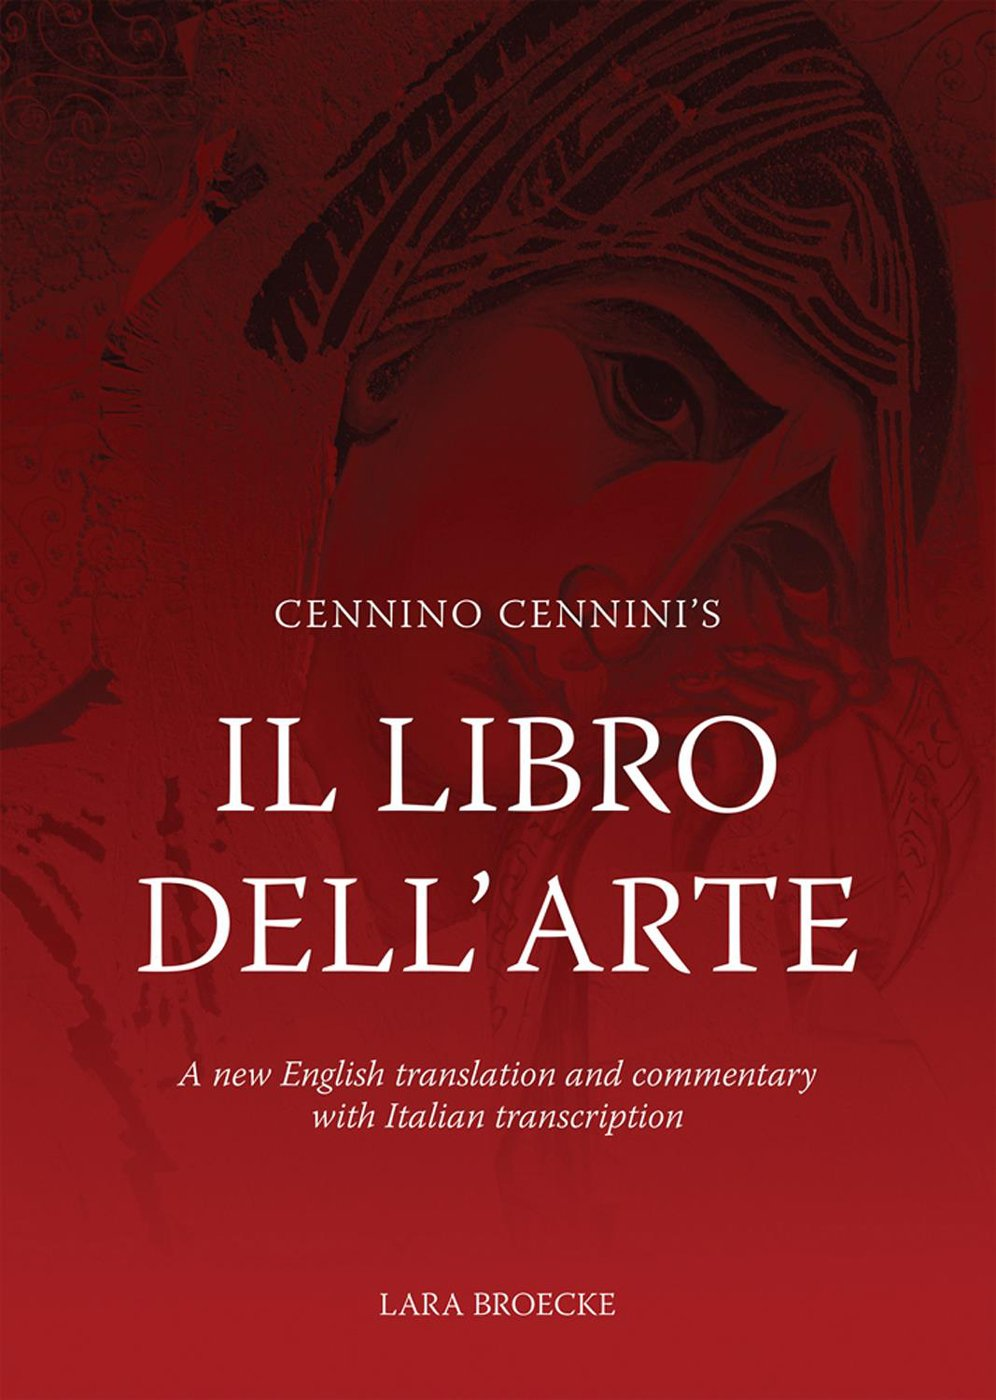 Cennino Cennini's Il Libro dell'Arte: A new English language translation and commentary and Italian transcription by Archetype Books